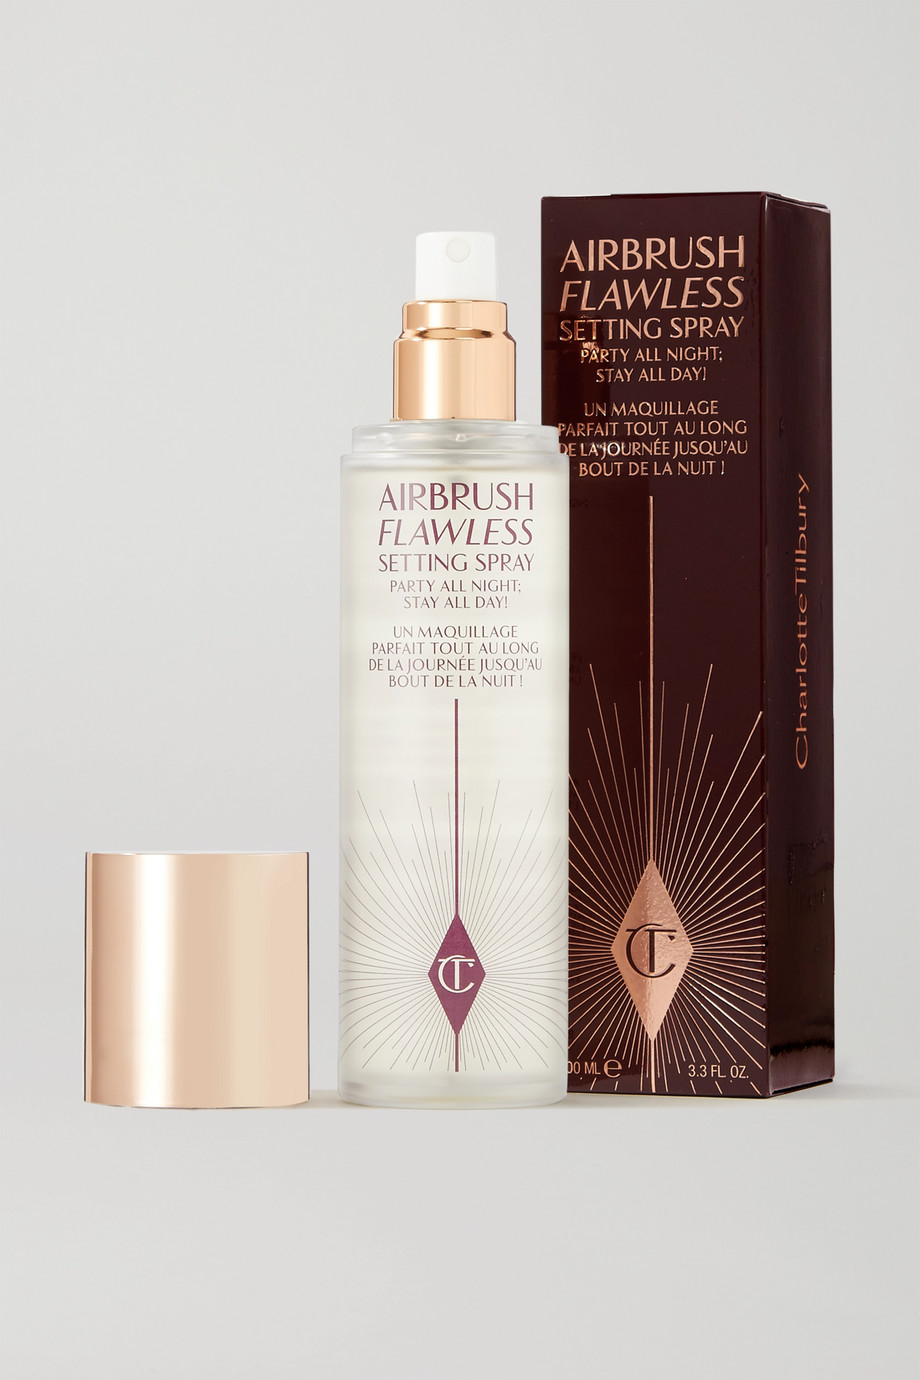 Charlotte Tilbury Airbrush Flawless Setting Spray, 100ml